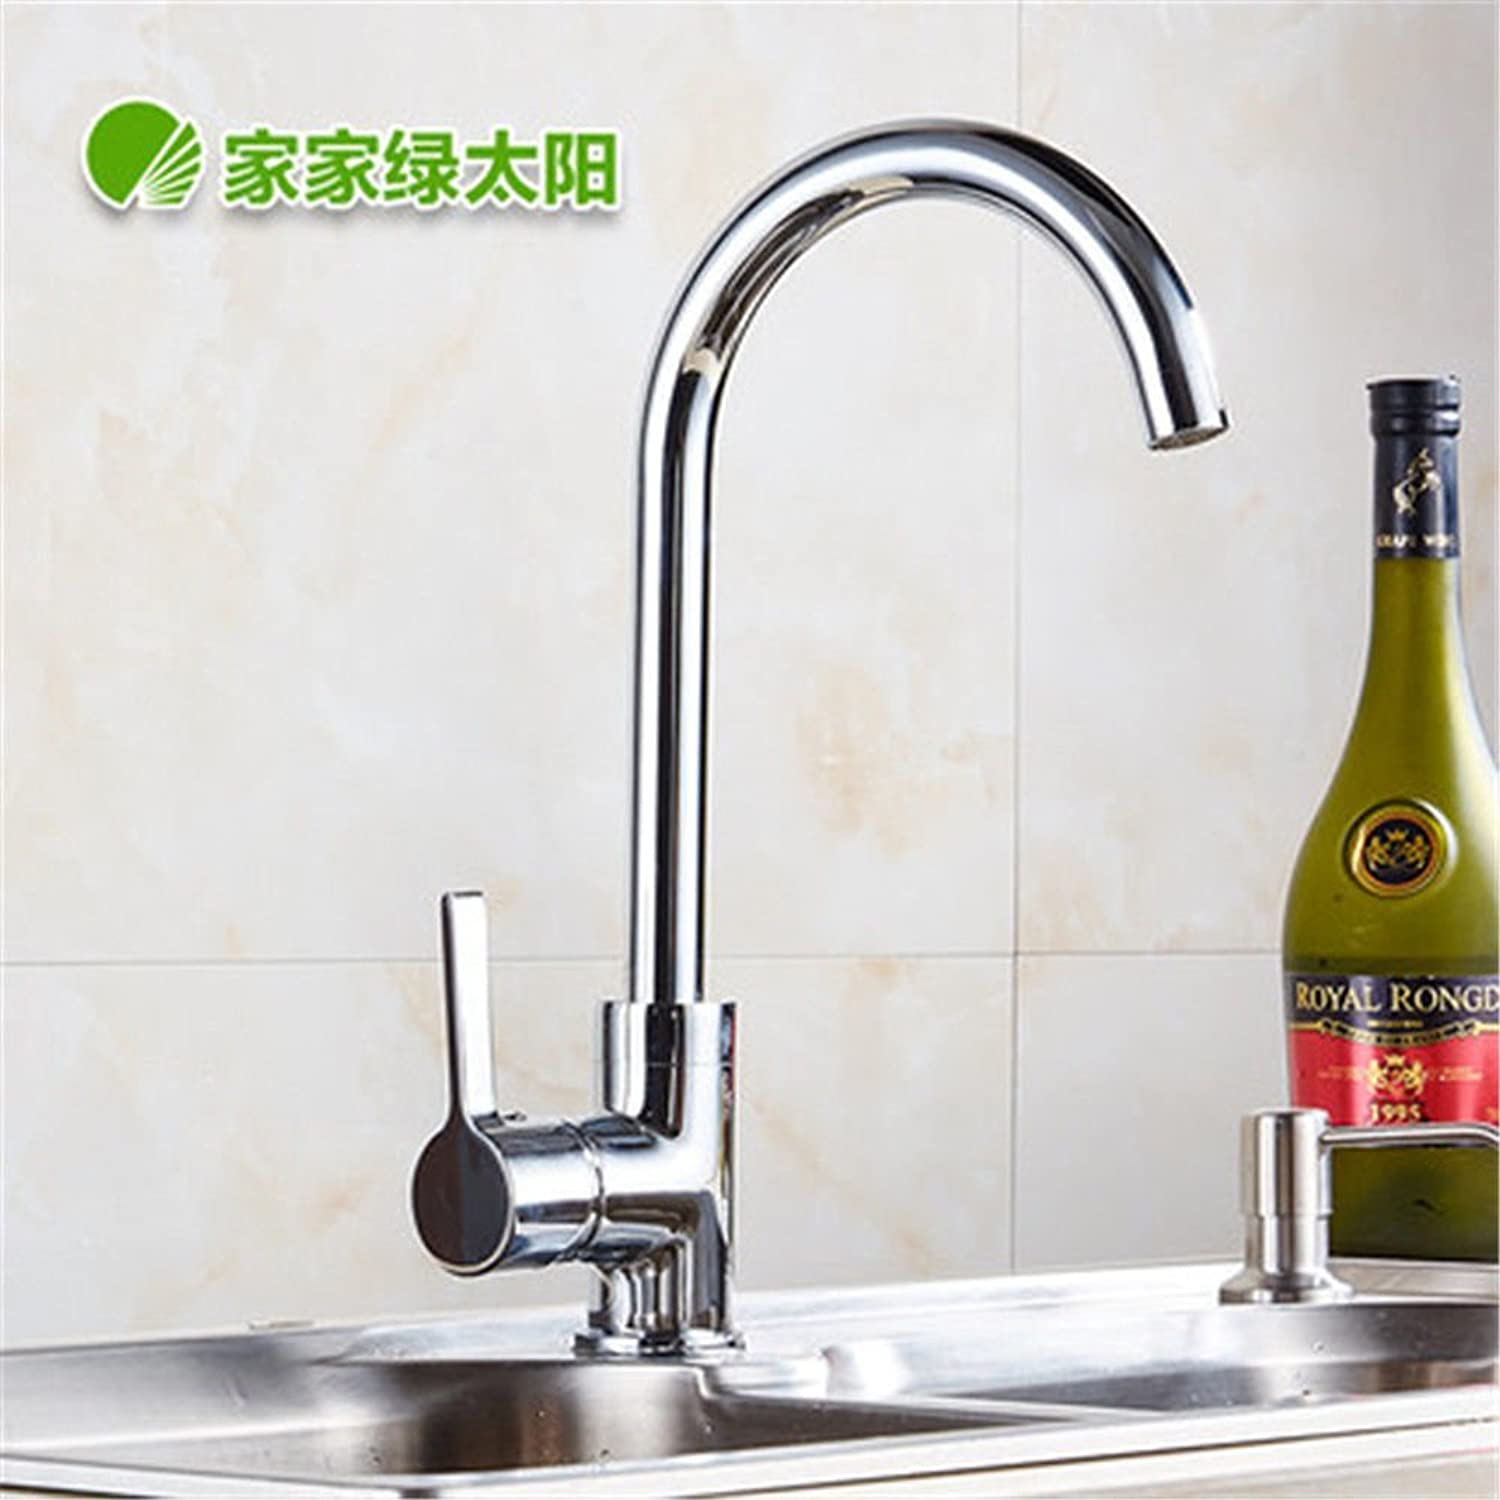 Oudan Bathroom Sink Basin Tap Brass Mixer Tap Washroom Mixer Faucet Kitchen faucet stainless steel water tank COLD WATER FAUCET dish washing basin to redate the